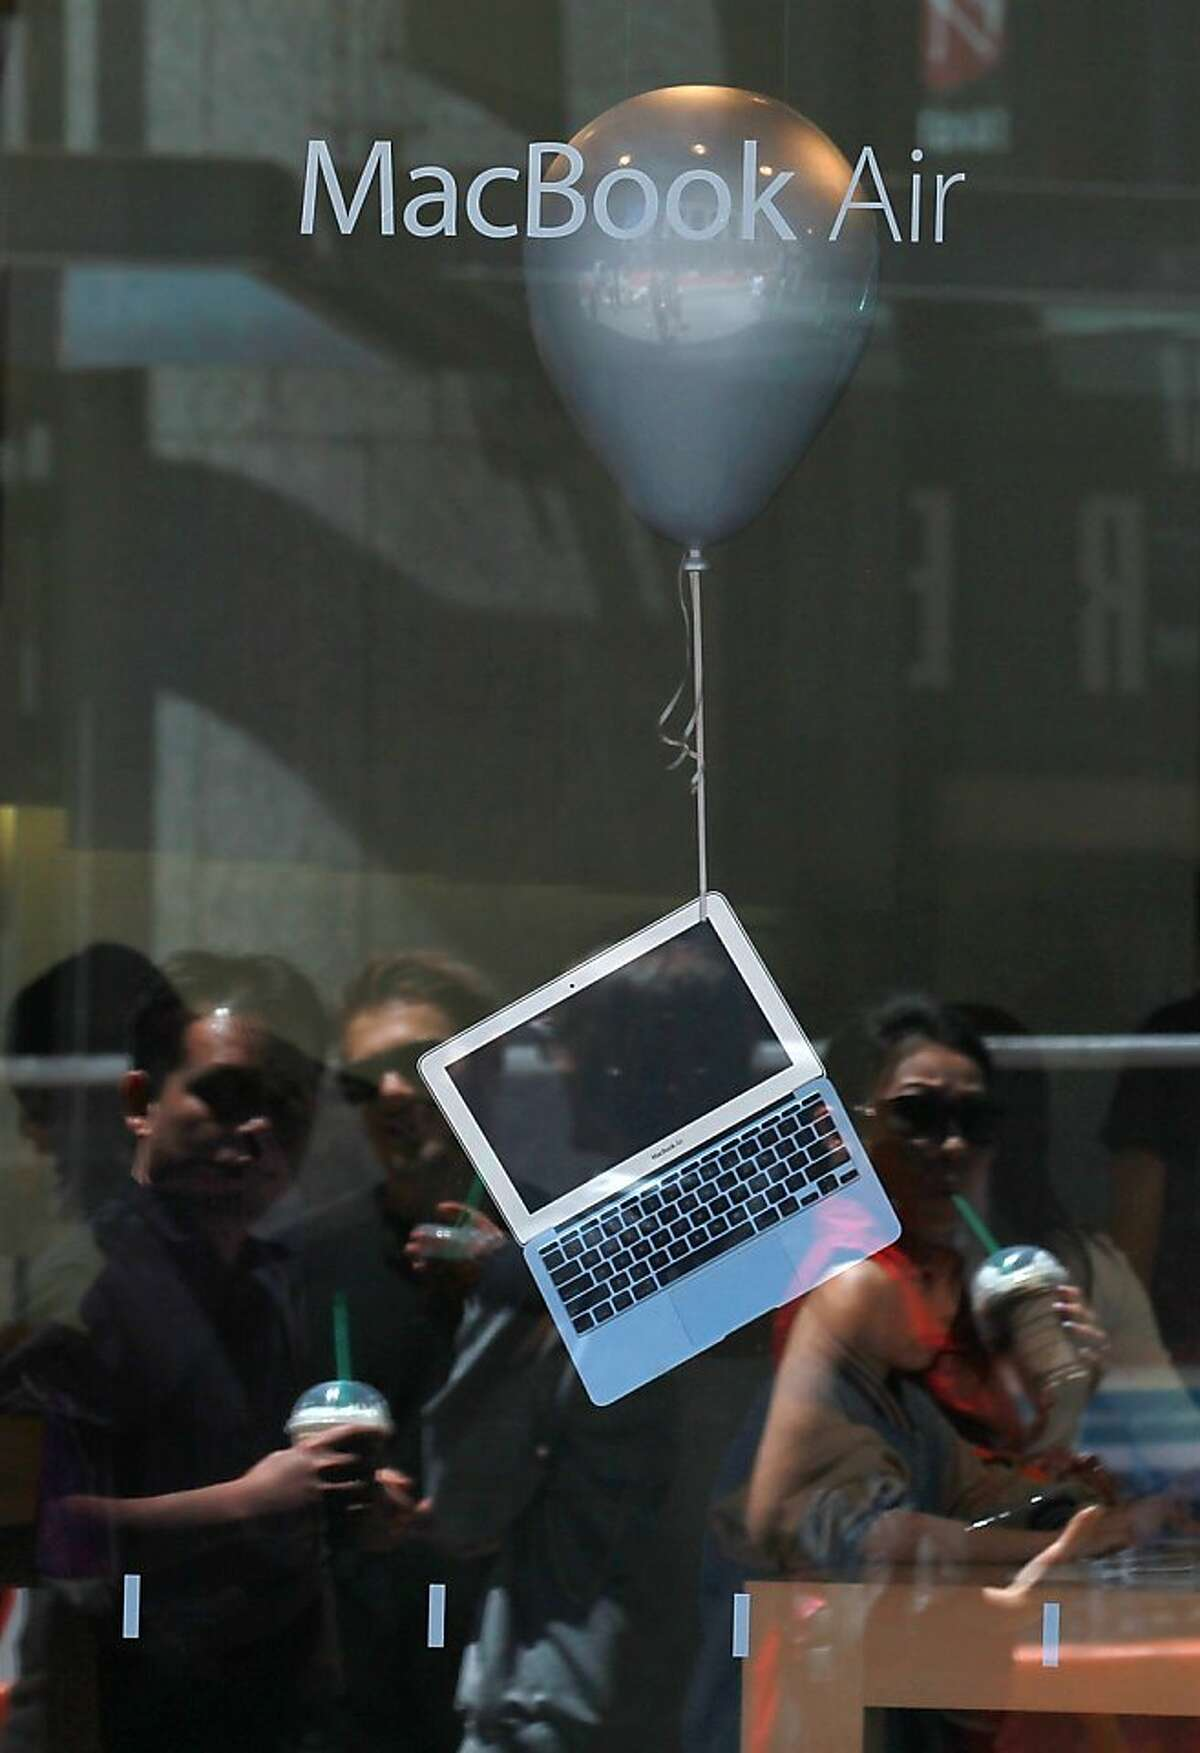 SAN FRANCISCO, CA - JULY 19: A MacBook Air is displayed in the window of an Apple Store on July 19, 2011 in San Francisco, California. Apple Inc. beat Wall Street expectations with a third quarter net profit of $7.31 billion, or $7.79 per share, compared to $3.25 billion, or $3.51 per share one year ago.